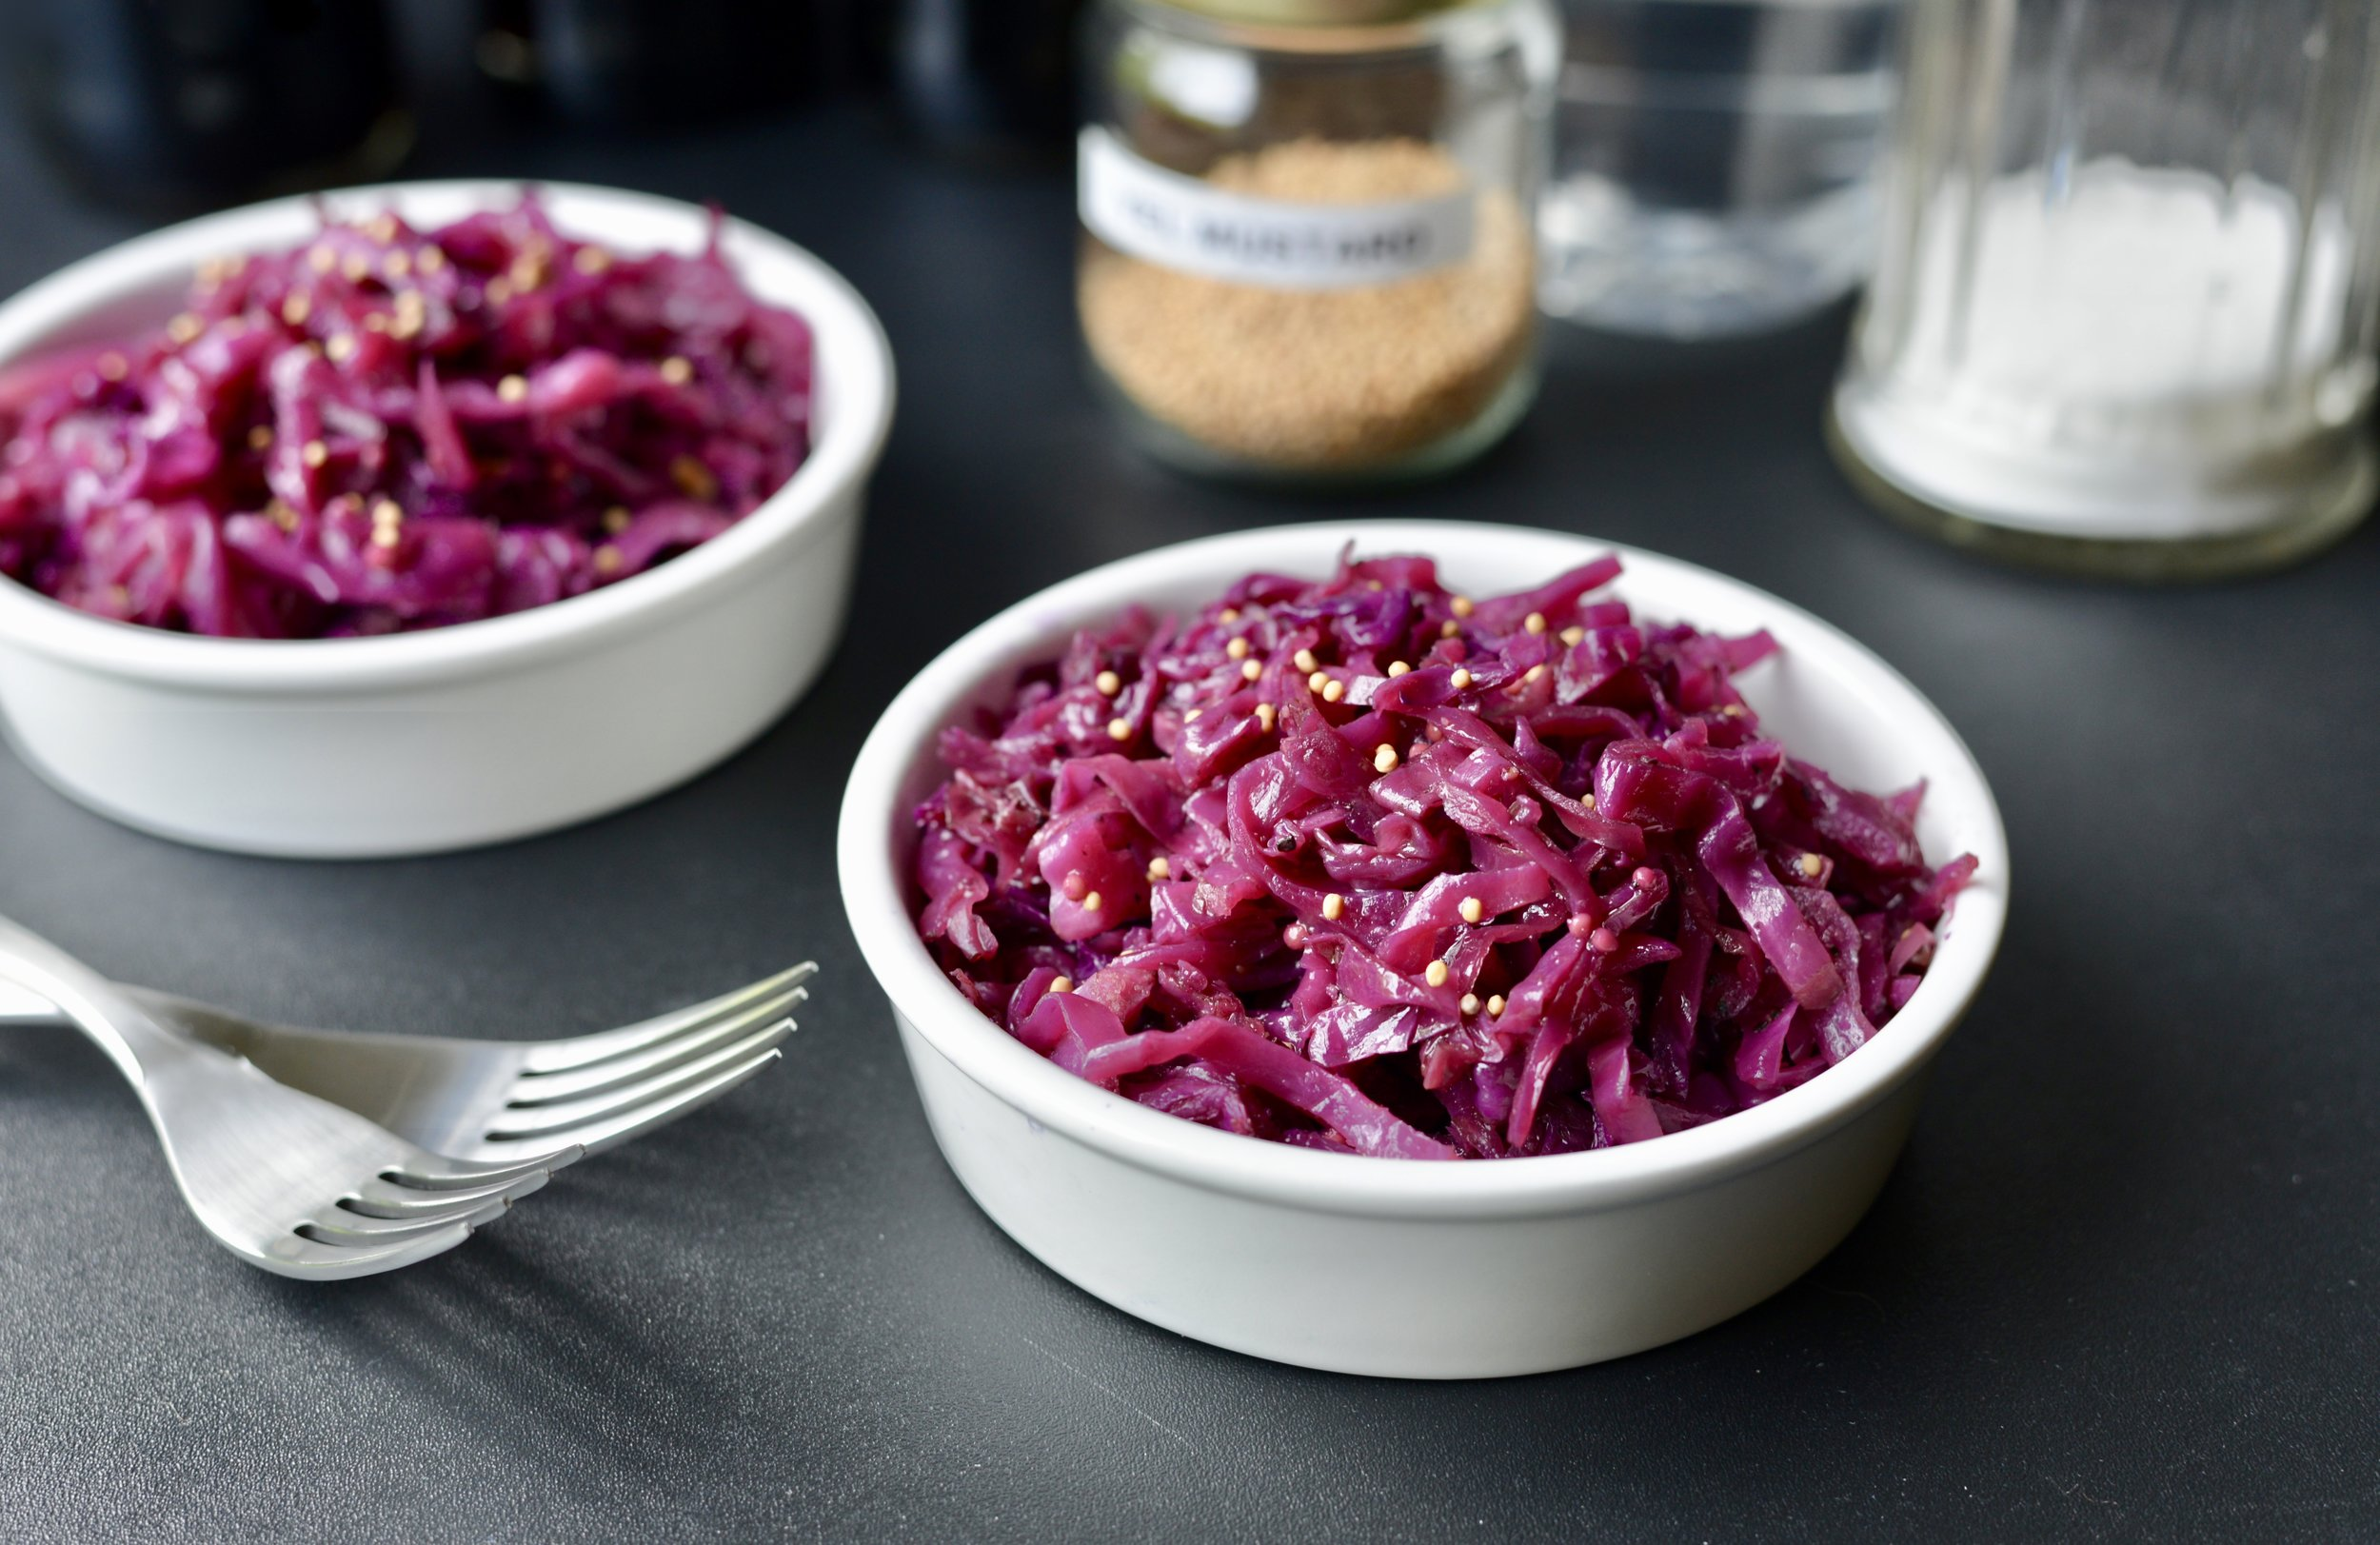 How to make Braised Red Cabbage in a skillet - ButterYum. Red cabbage recipe. Sweet and Sour Red Cabbage. Sauteed red cabbage recipe.